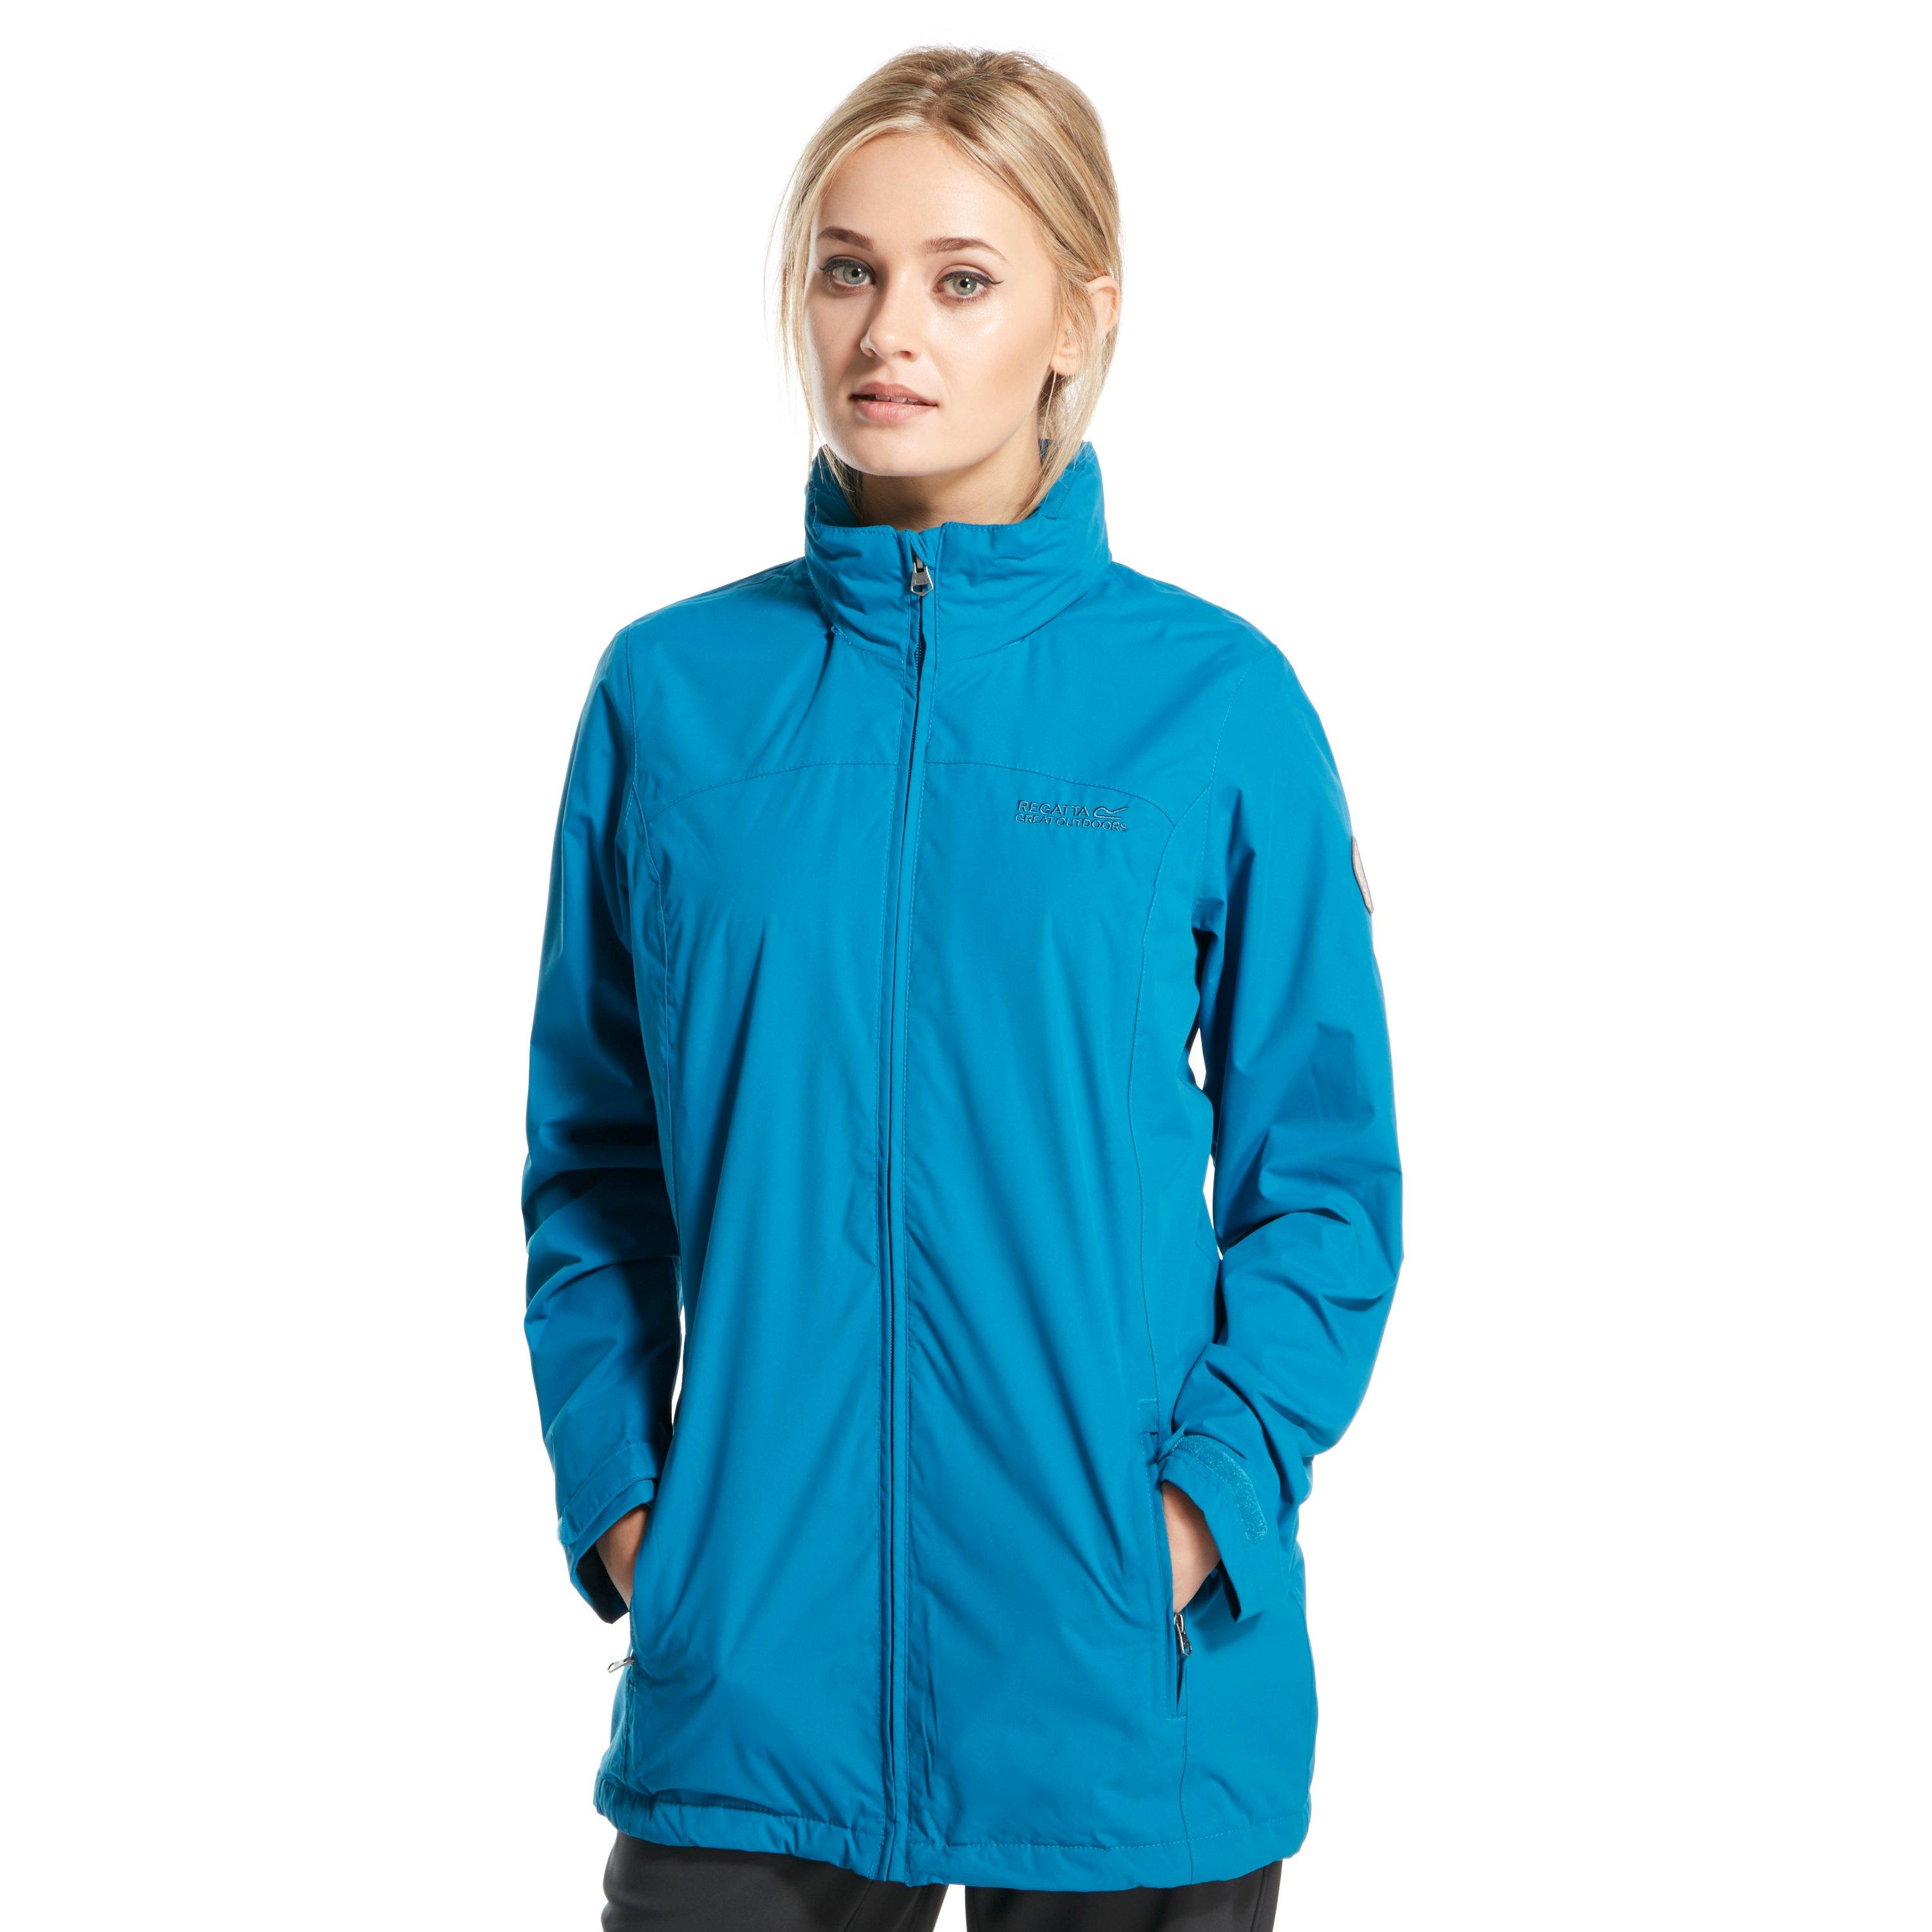 Regatta Womens Myrtle Jacket  Black Black